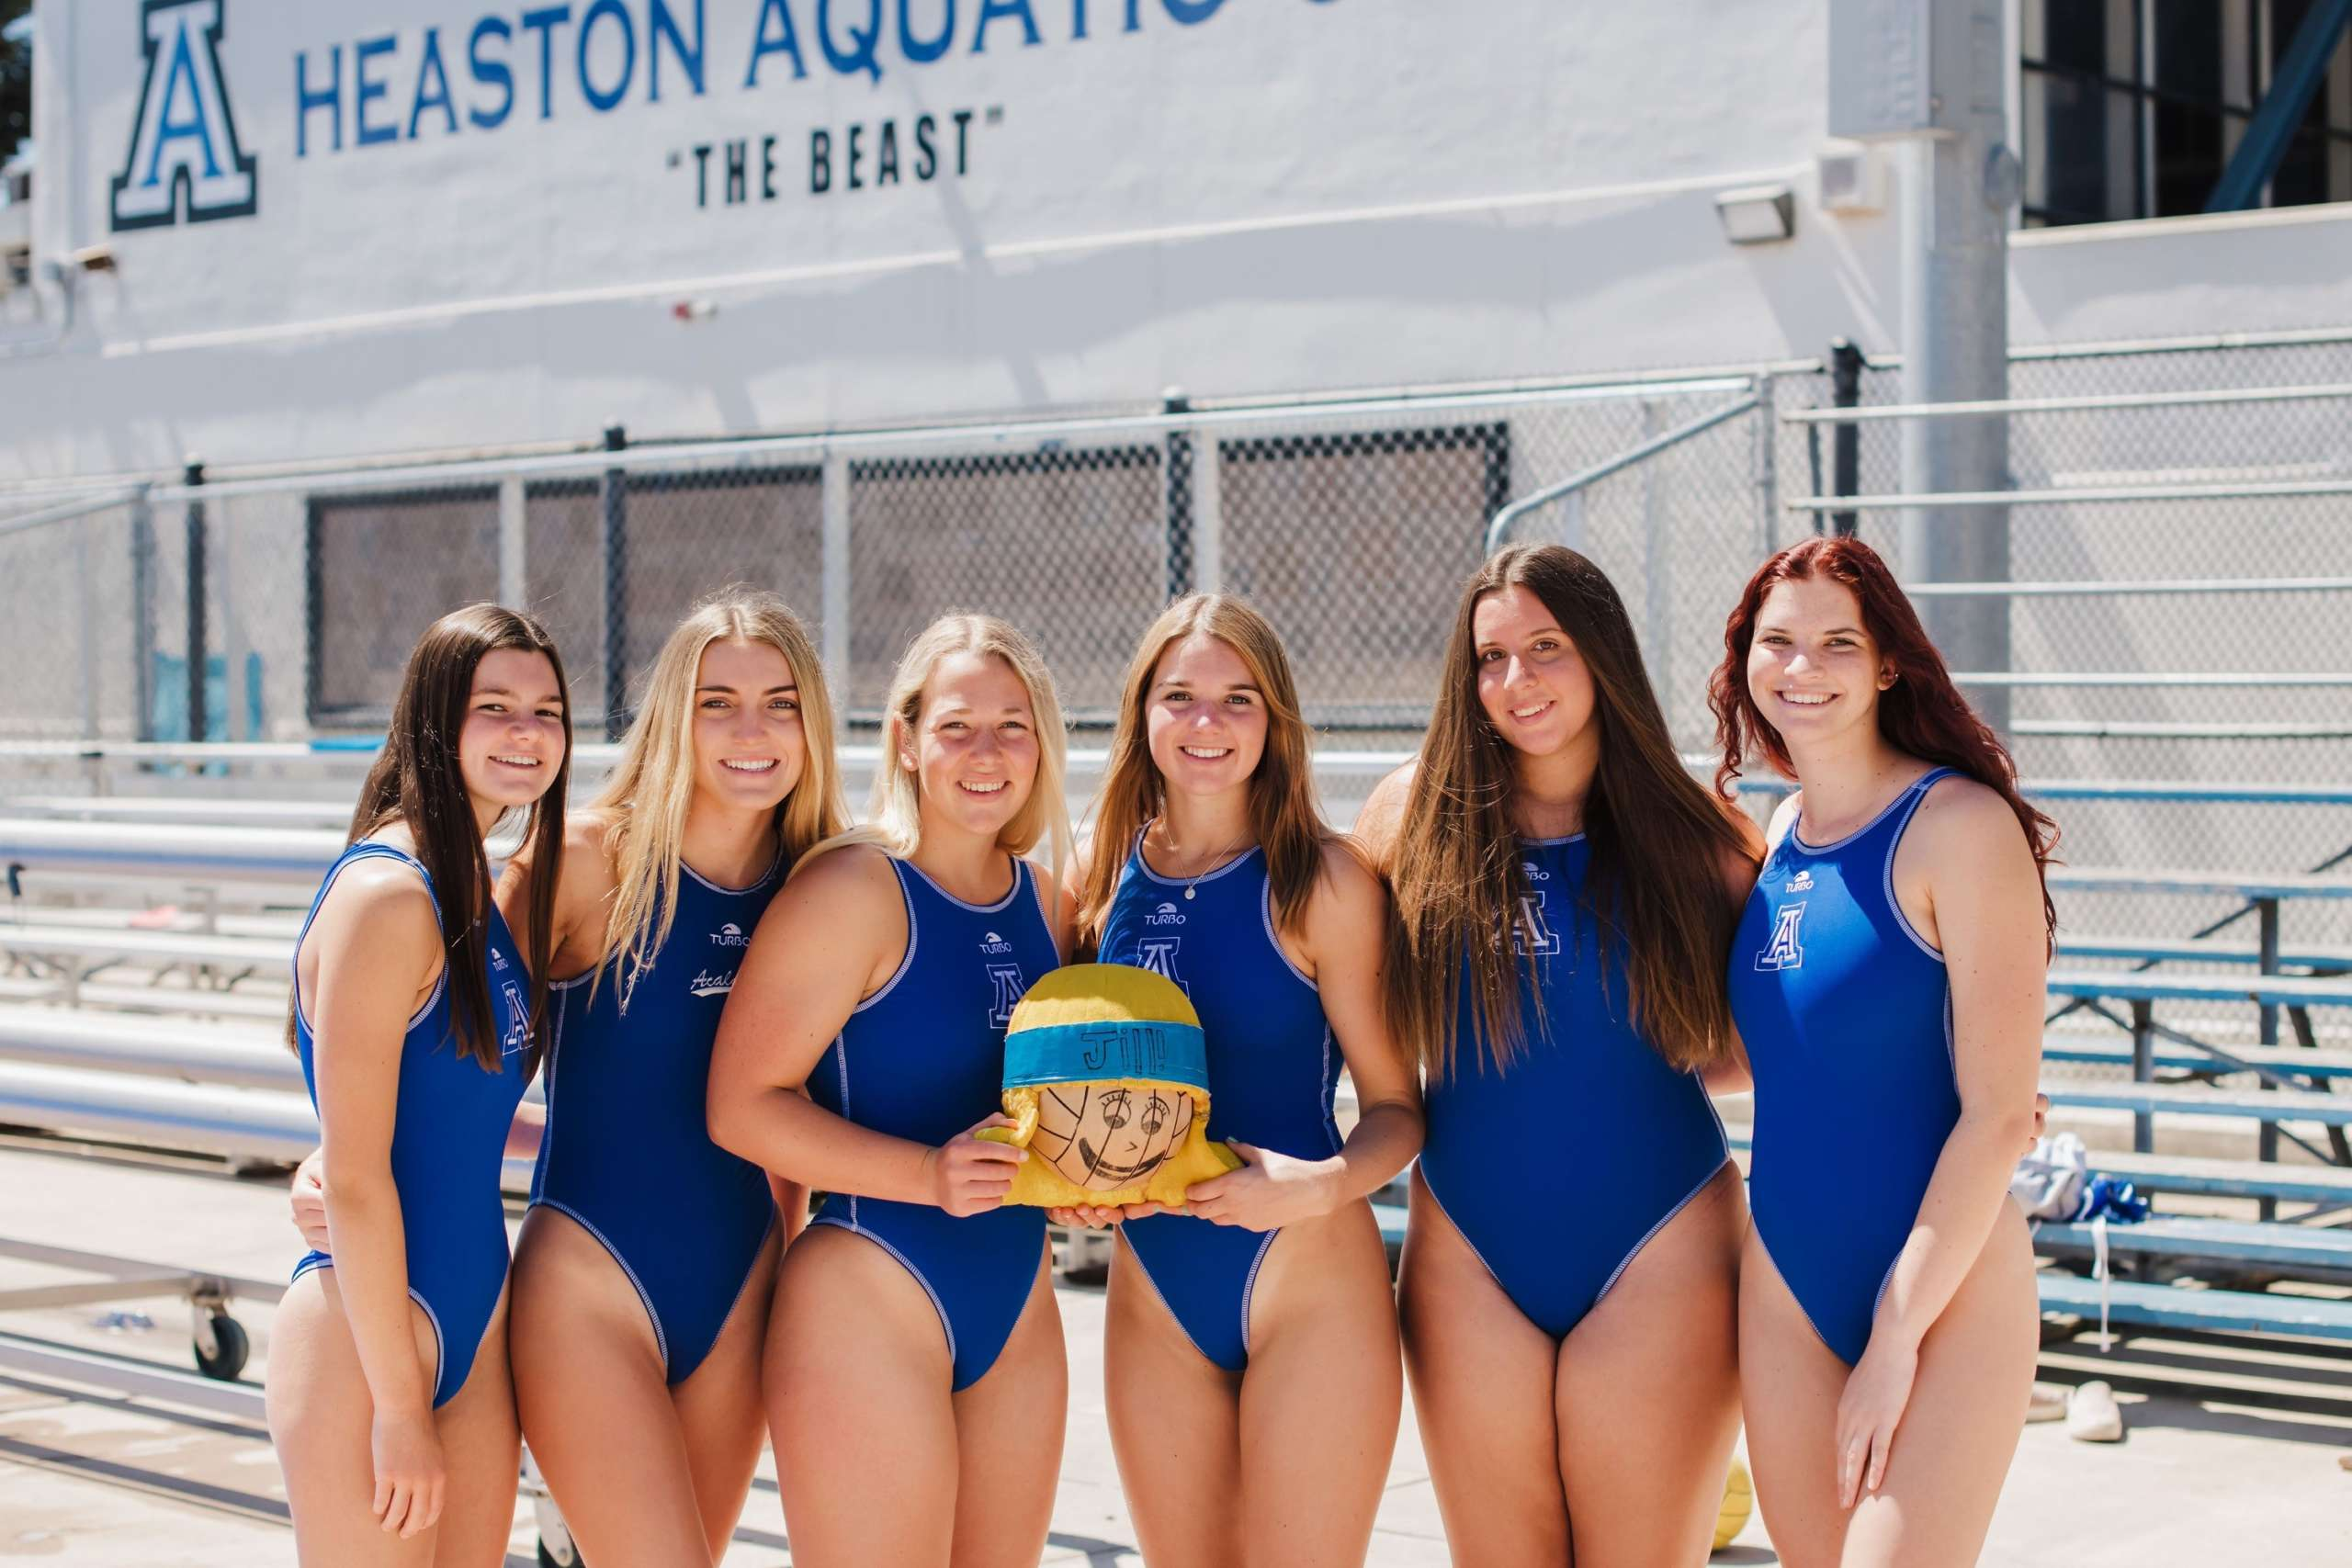 Lady Dons Polo 59 Game Streak Comes to an End in Close Match with Mats